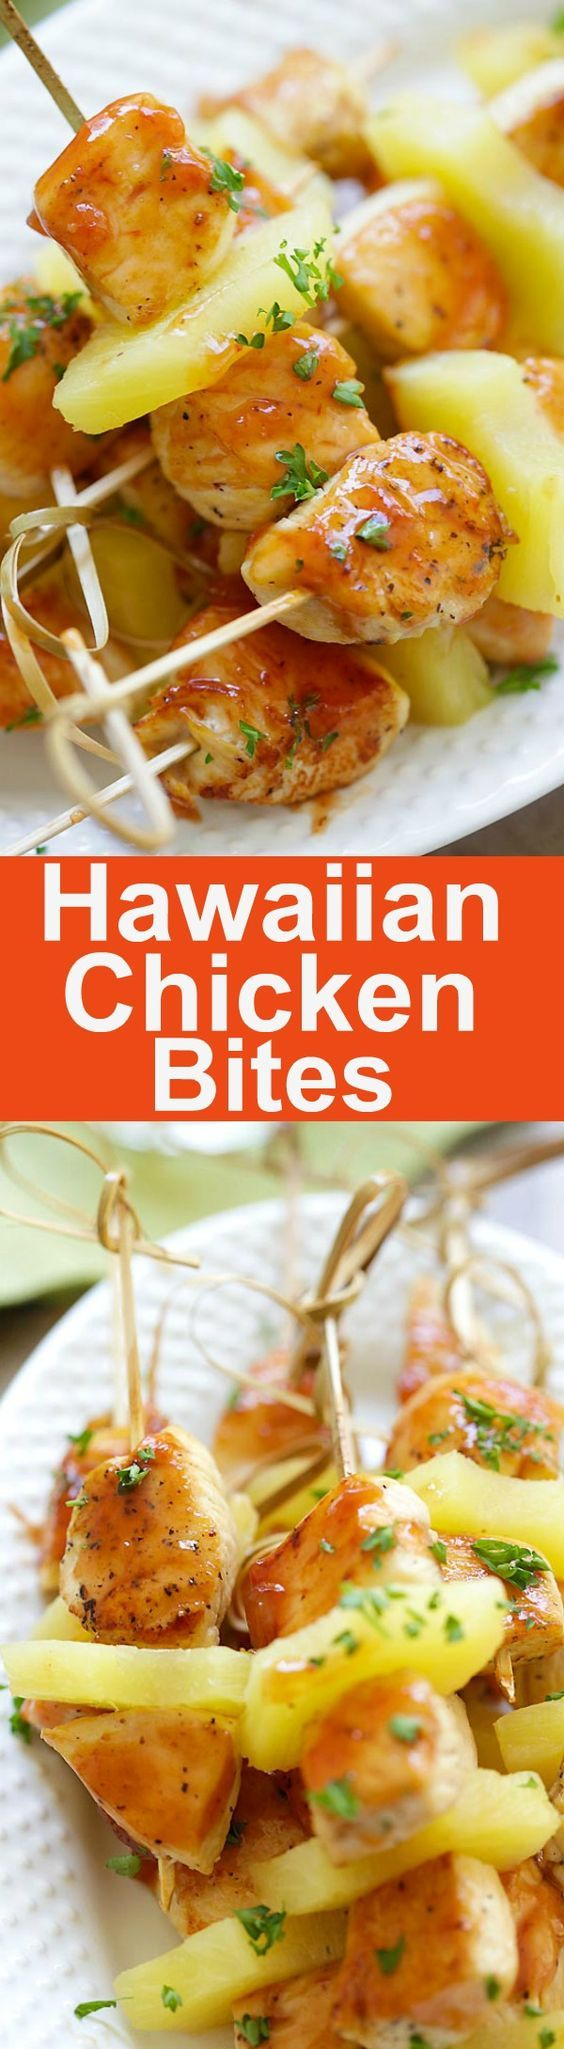 CAN ADD SPAM OR HAM CUBES ALSO!! Hawaiian Chicken Bites – amazing chicken skewers with pineapple with Hawaiian BBQ sauce. This recipe is so easy and a crowd pleaser | rasamalaysia.com